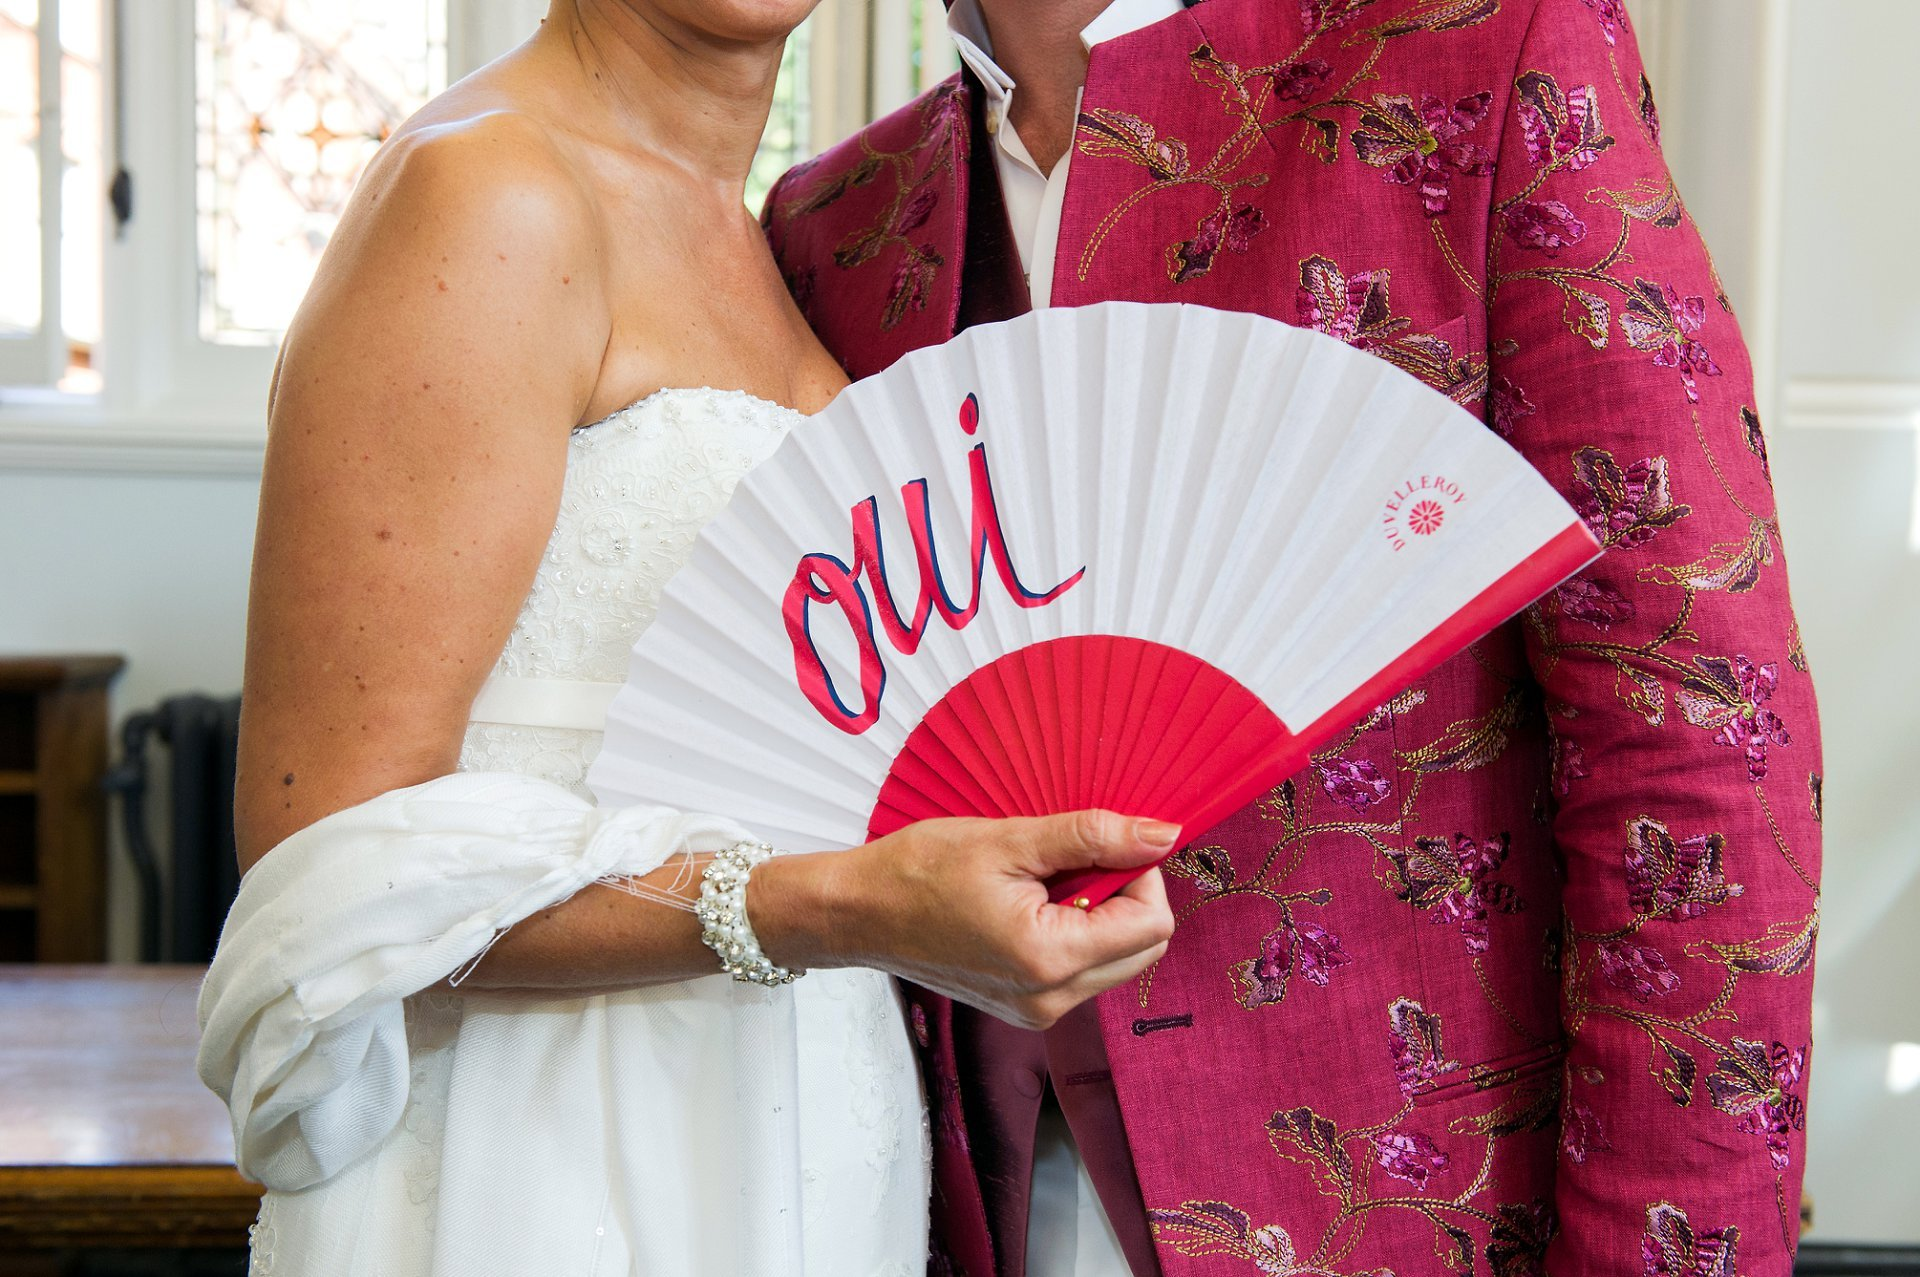 The bride and groom and the 'oui' fan at Mayfair Library